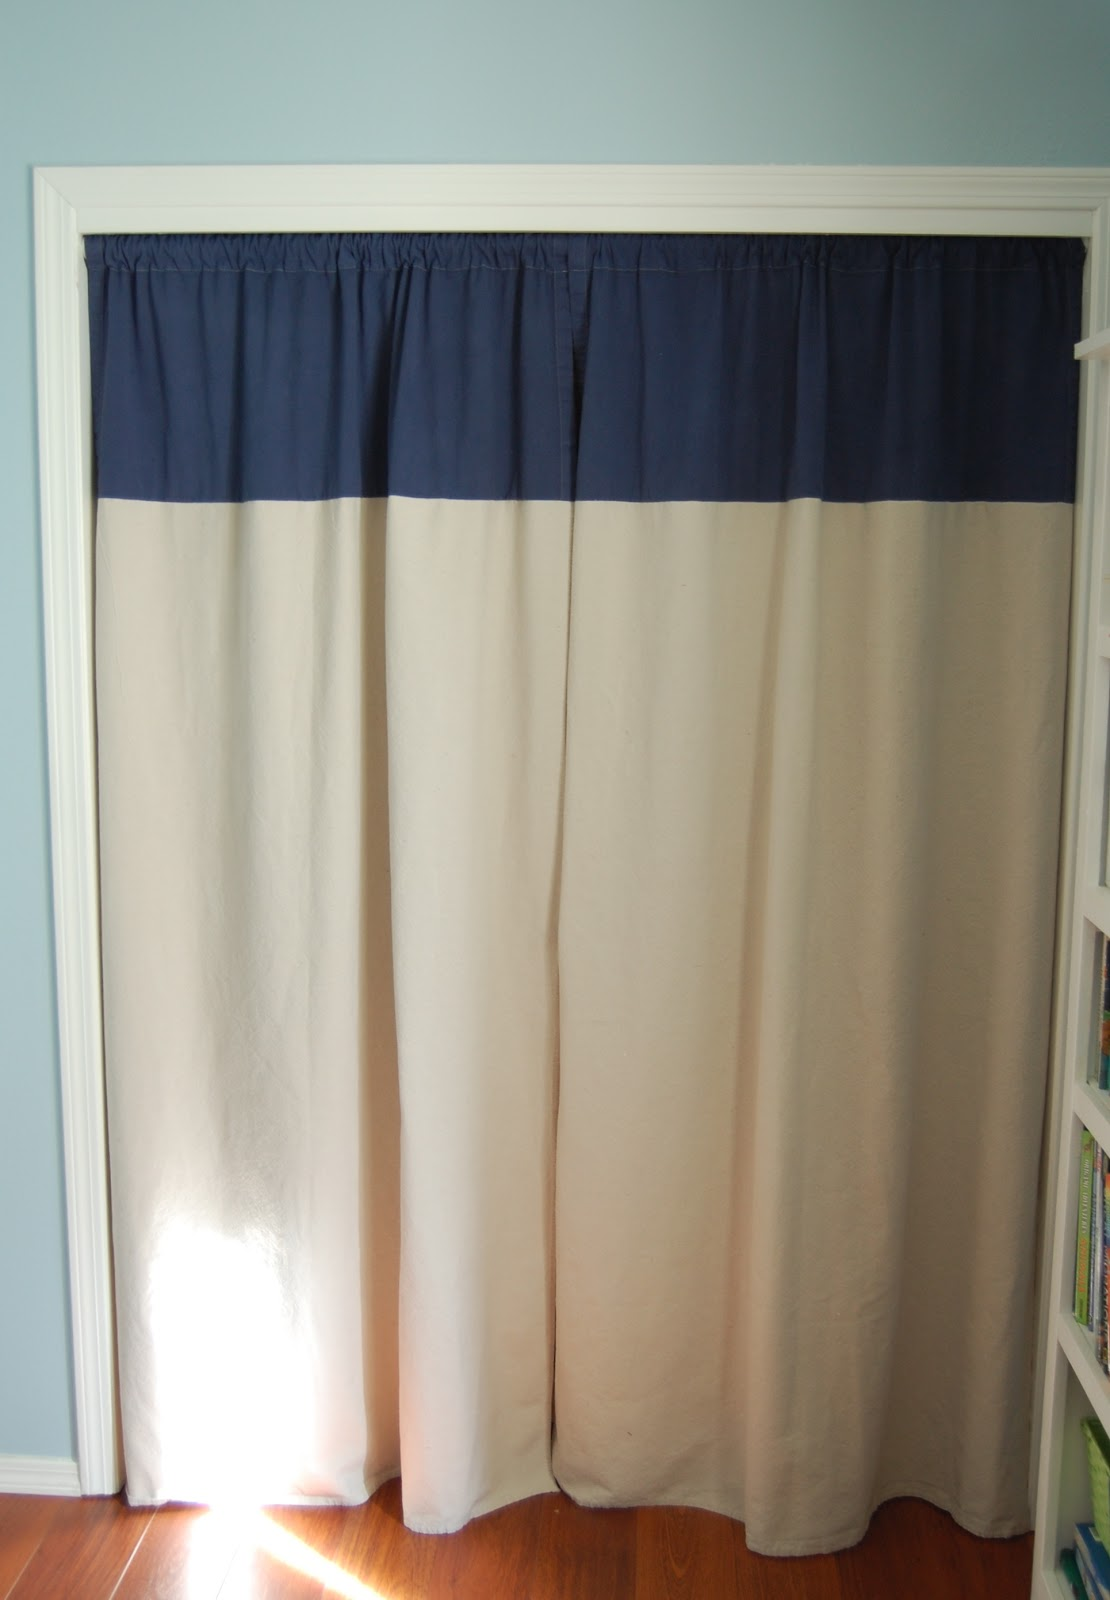 Drop cloth curtains diy desert willow lane